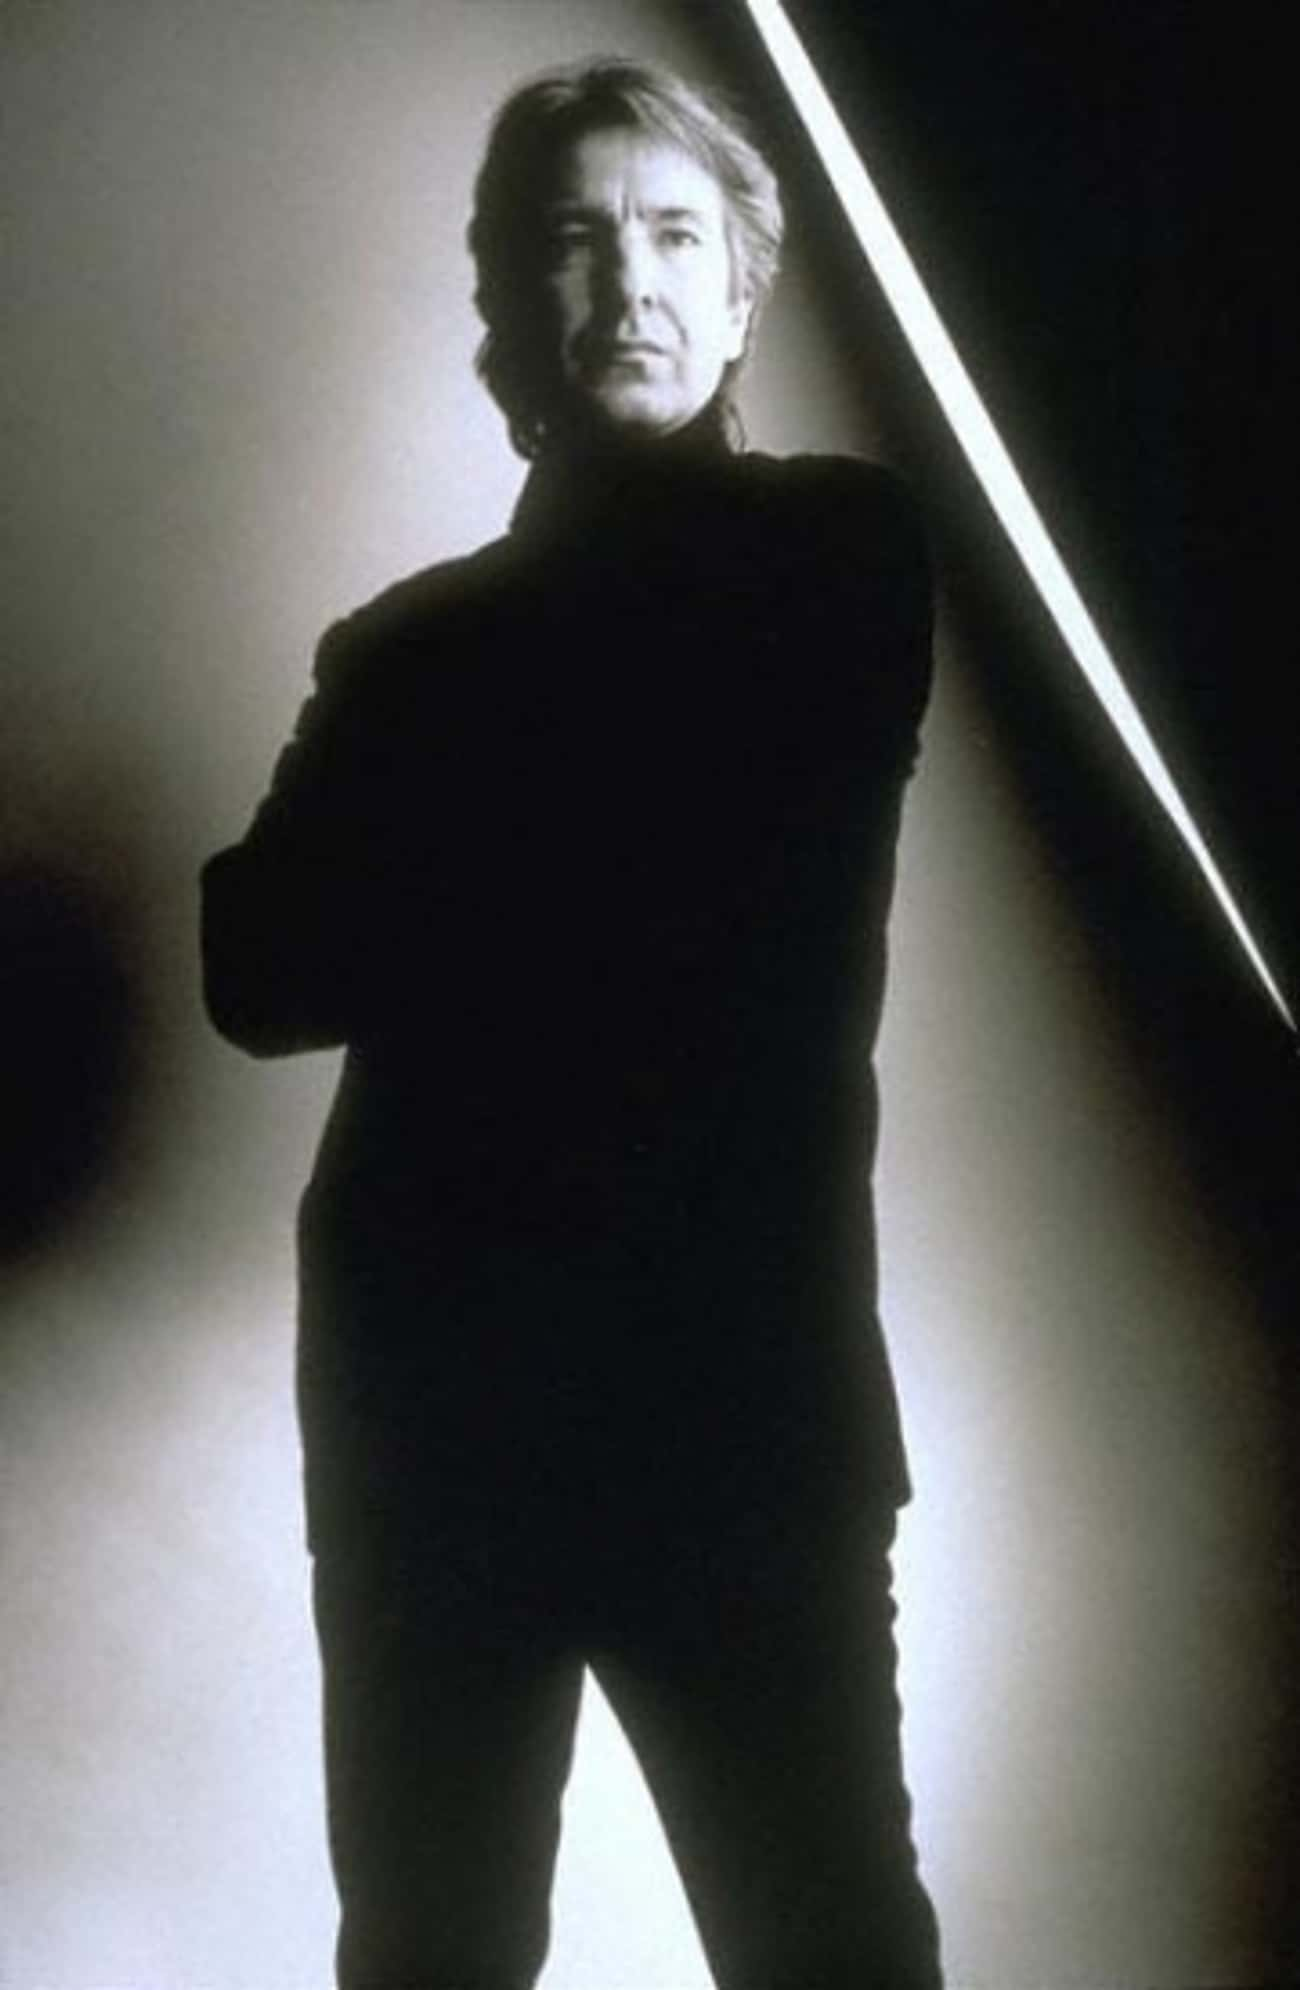 Alan Rickman in Turtle Neck Sw is listed (or ranked) 3 on the list Hot Alan Rickman Photos